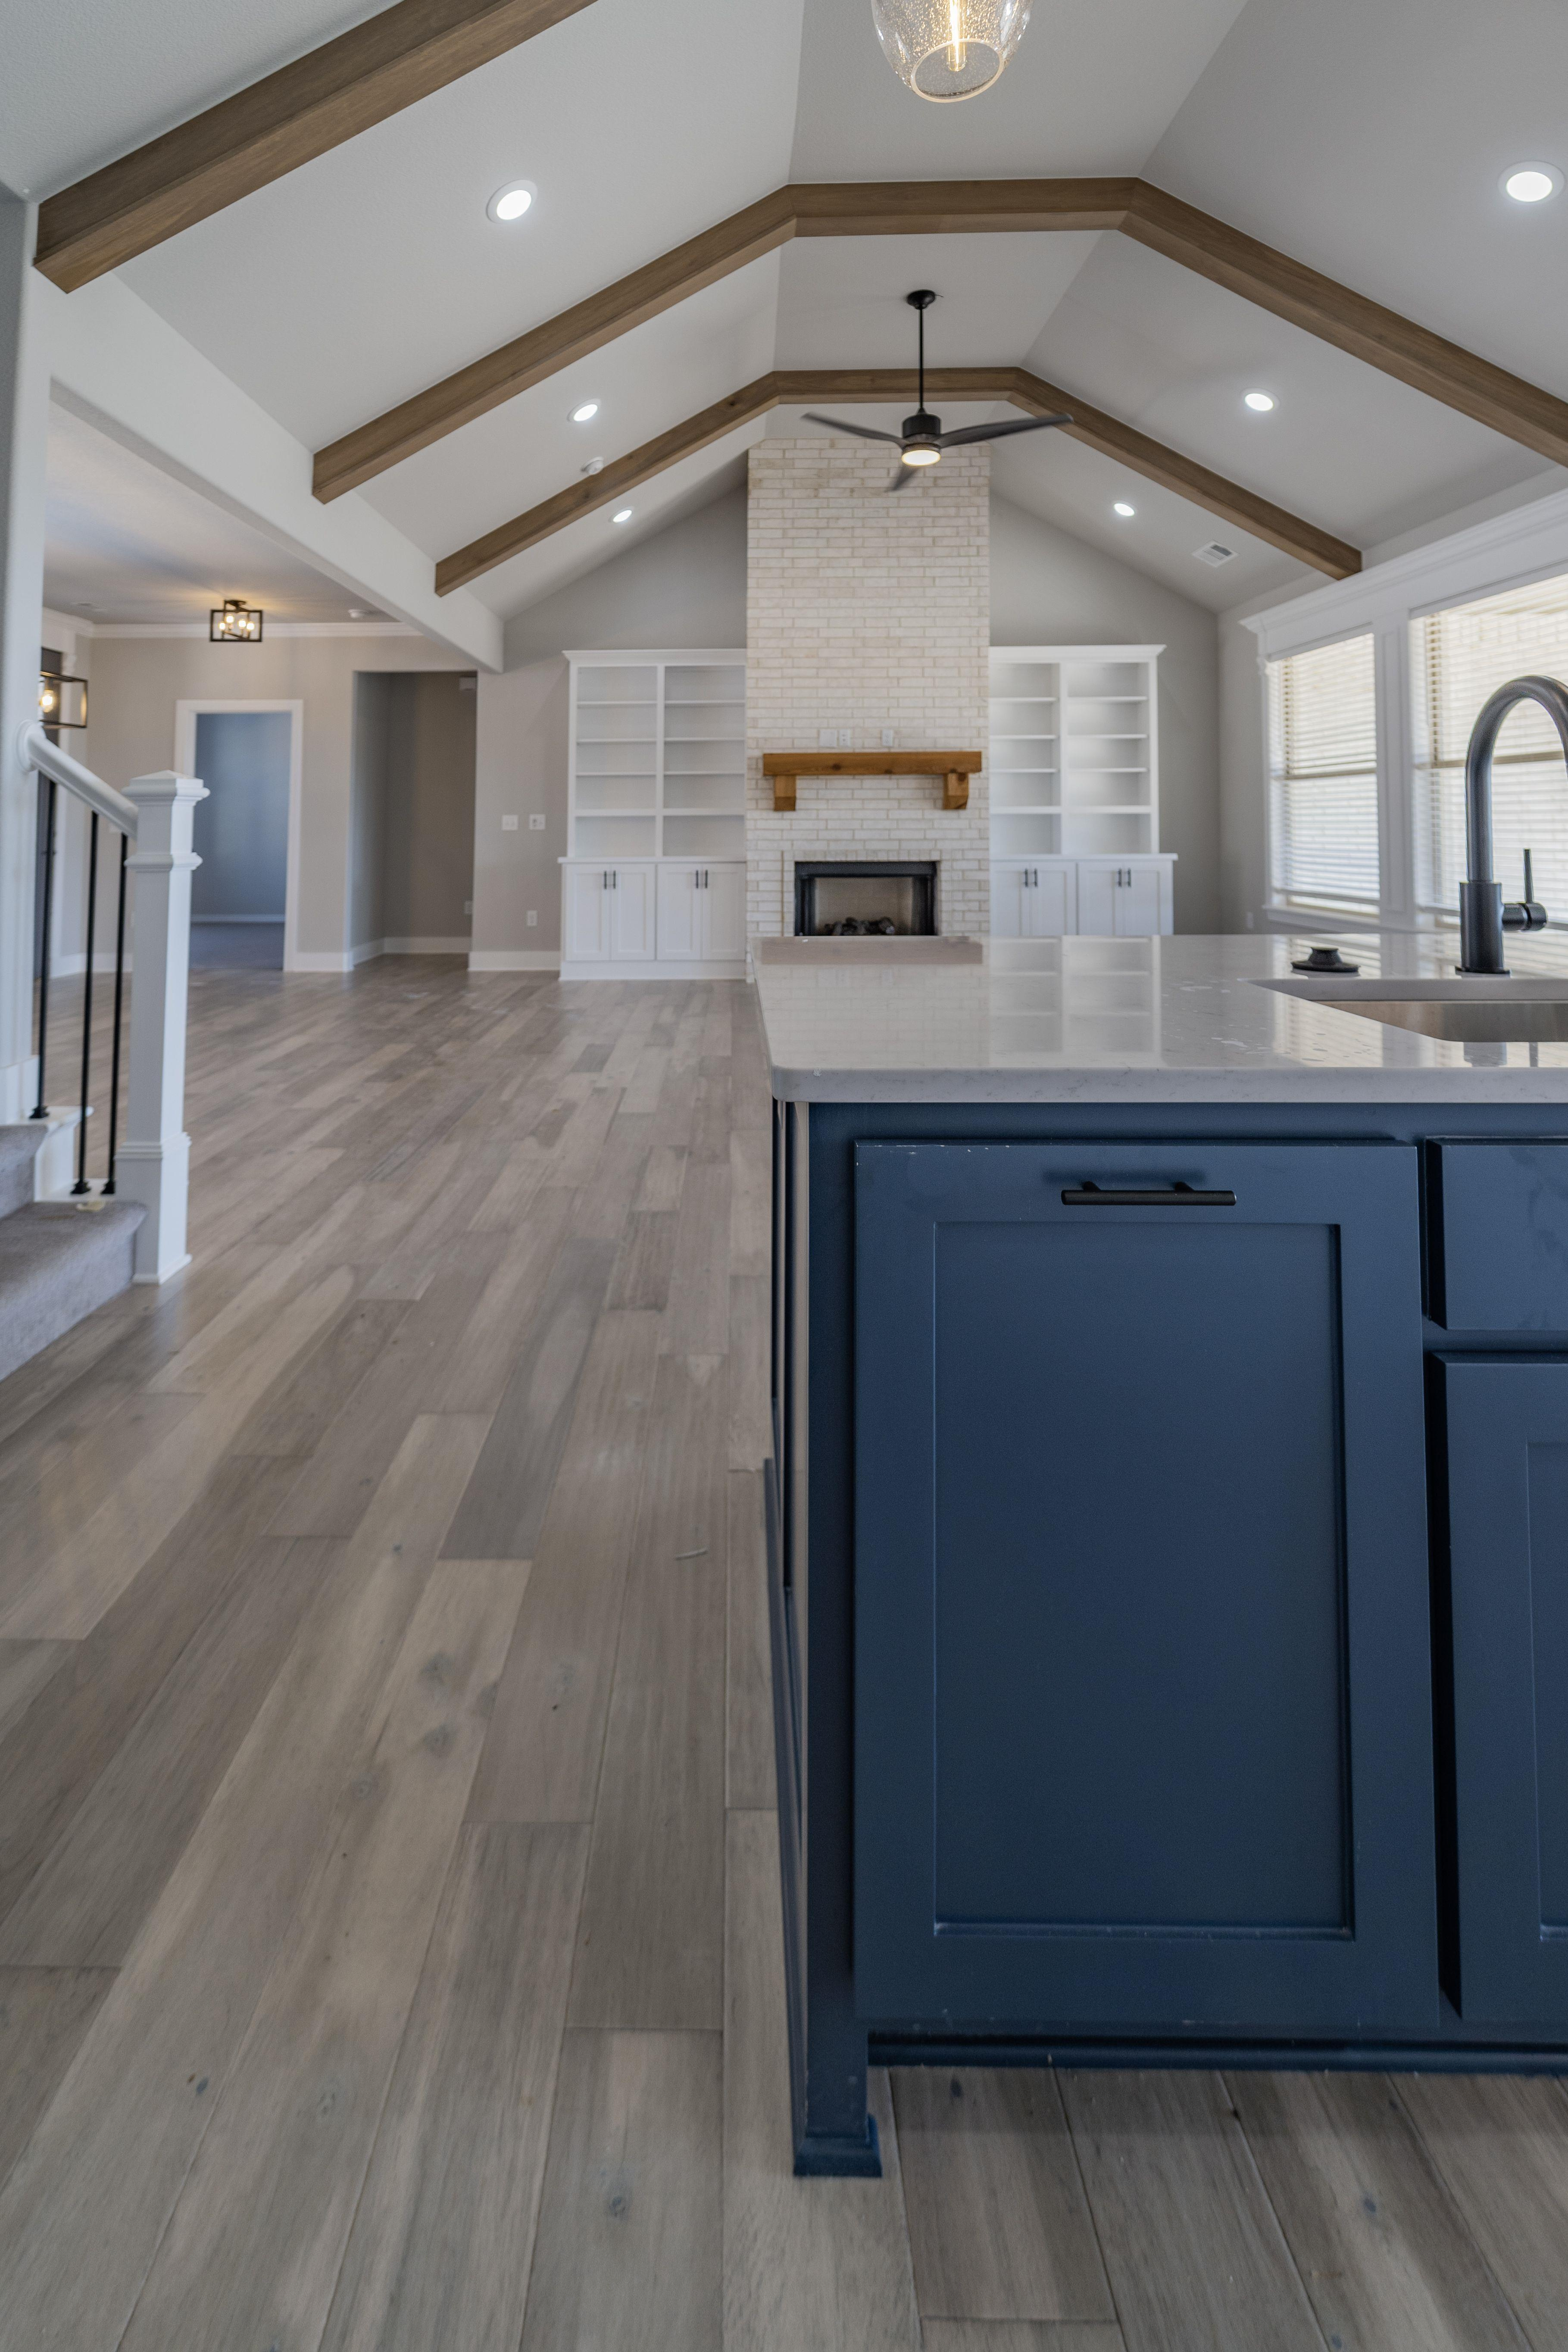 Kitchen featured in the Diamond 2901 By Riverwood Homes - Arkansas in Fayetteville, AR